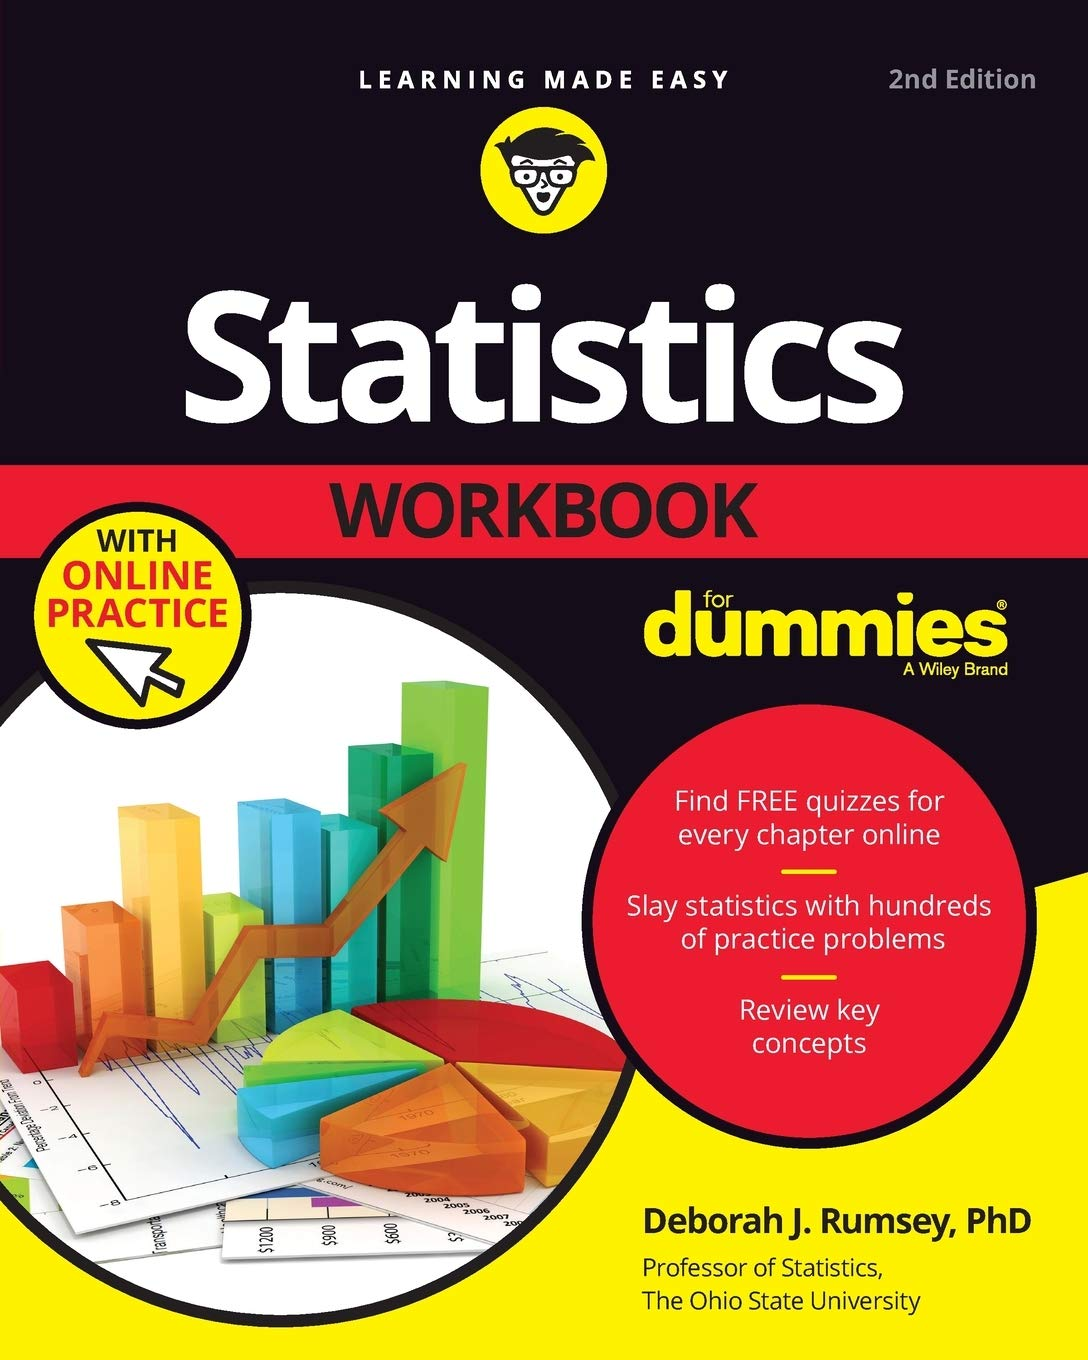 Image OfStatistics Workbook For Dummies With Online Practice, 2nd Edition